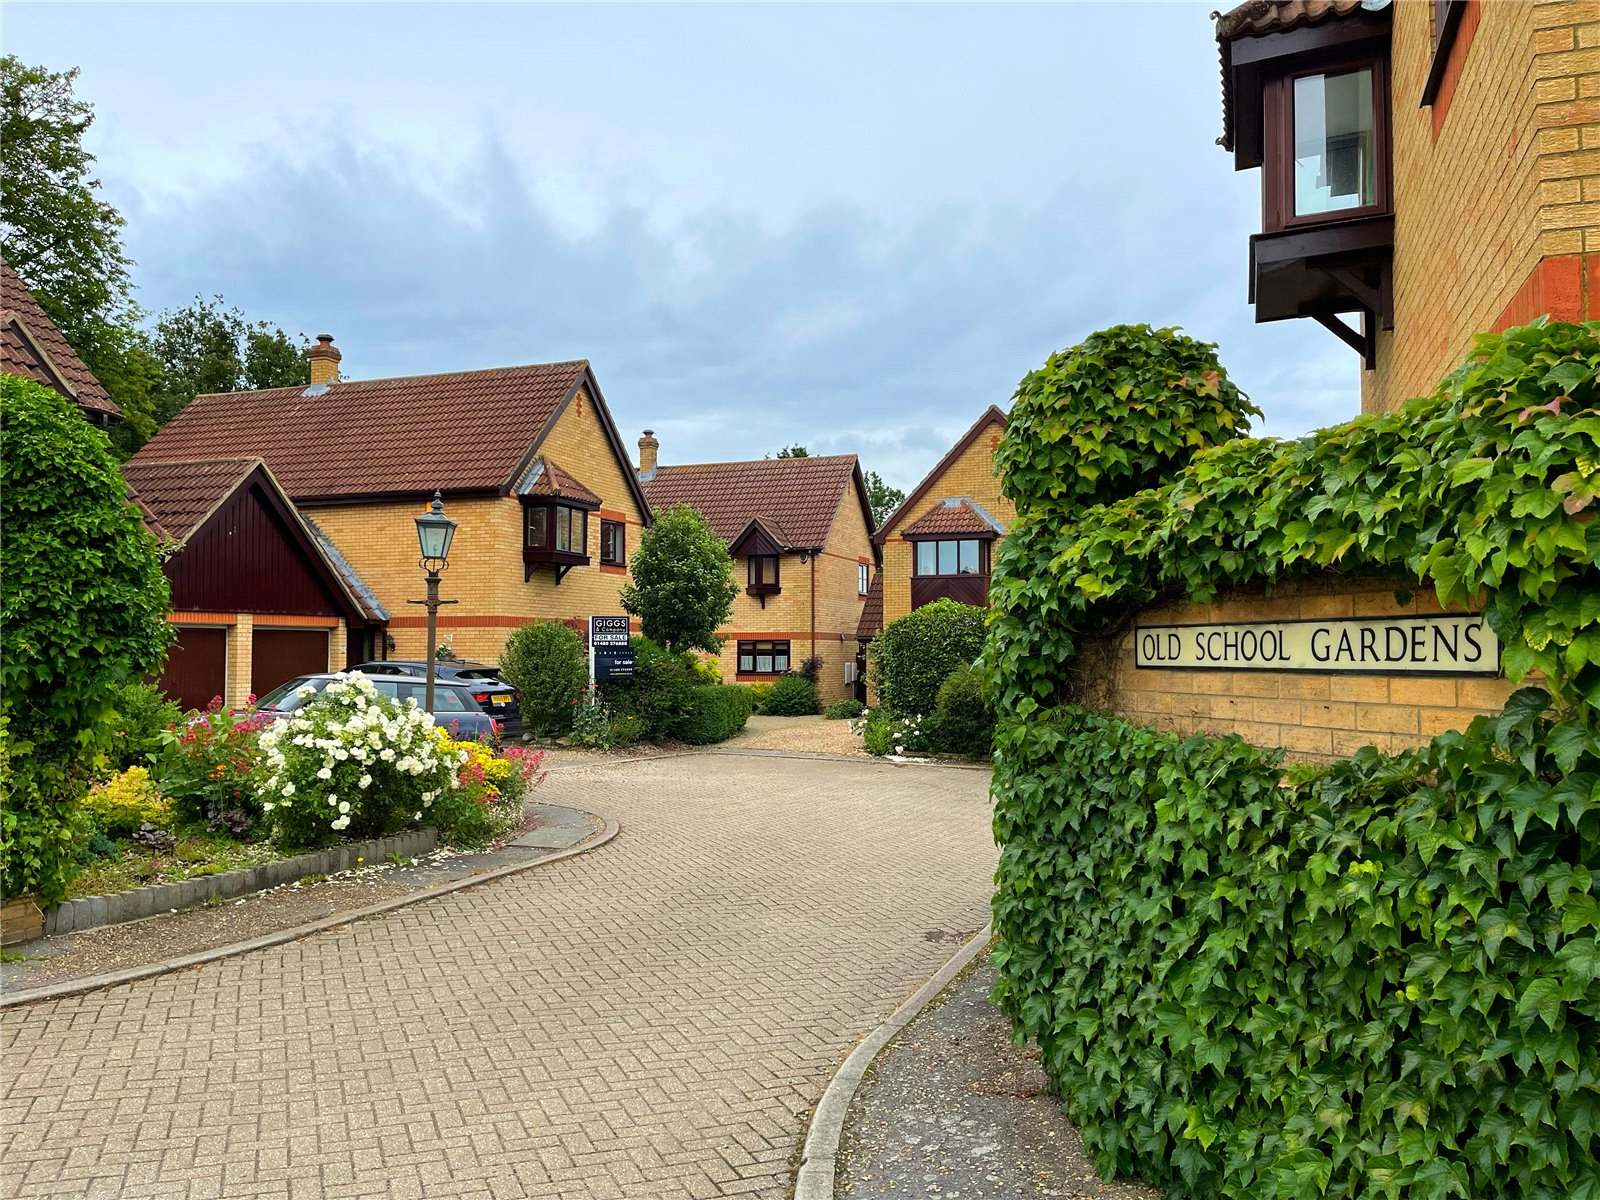 4 bed house for sale in Old School Gardens, Eaton Socon, PE19